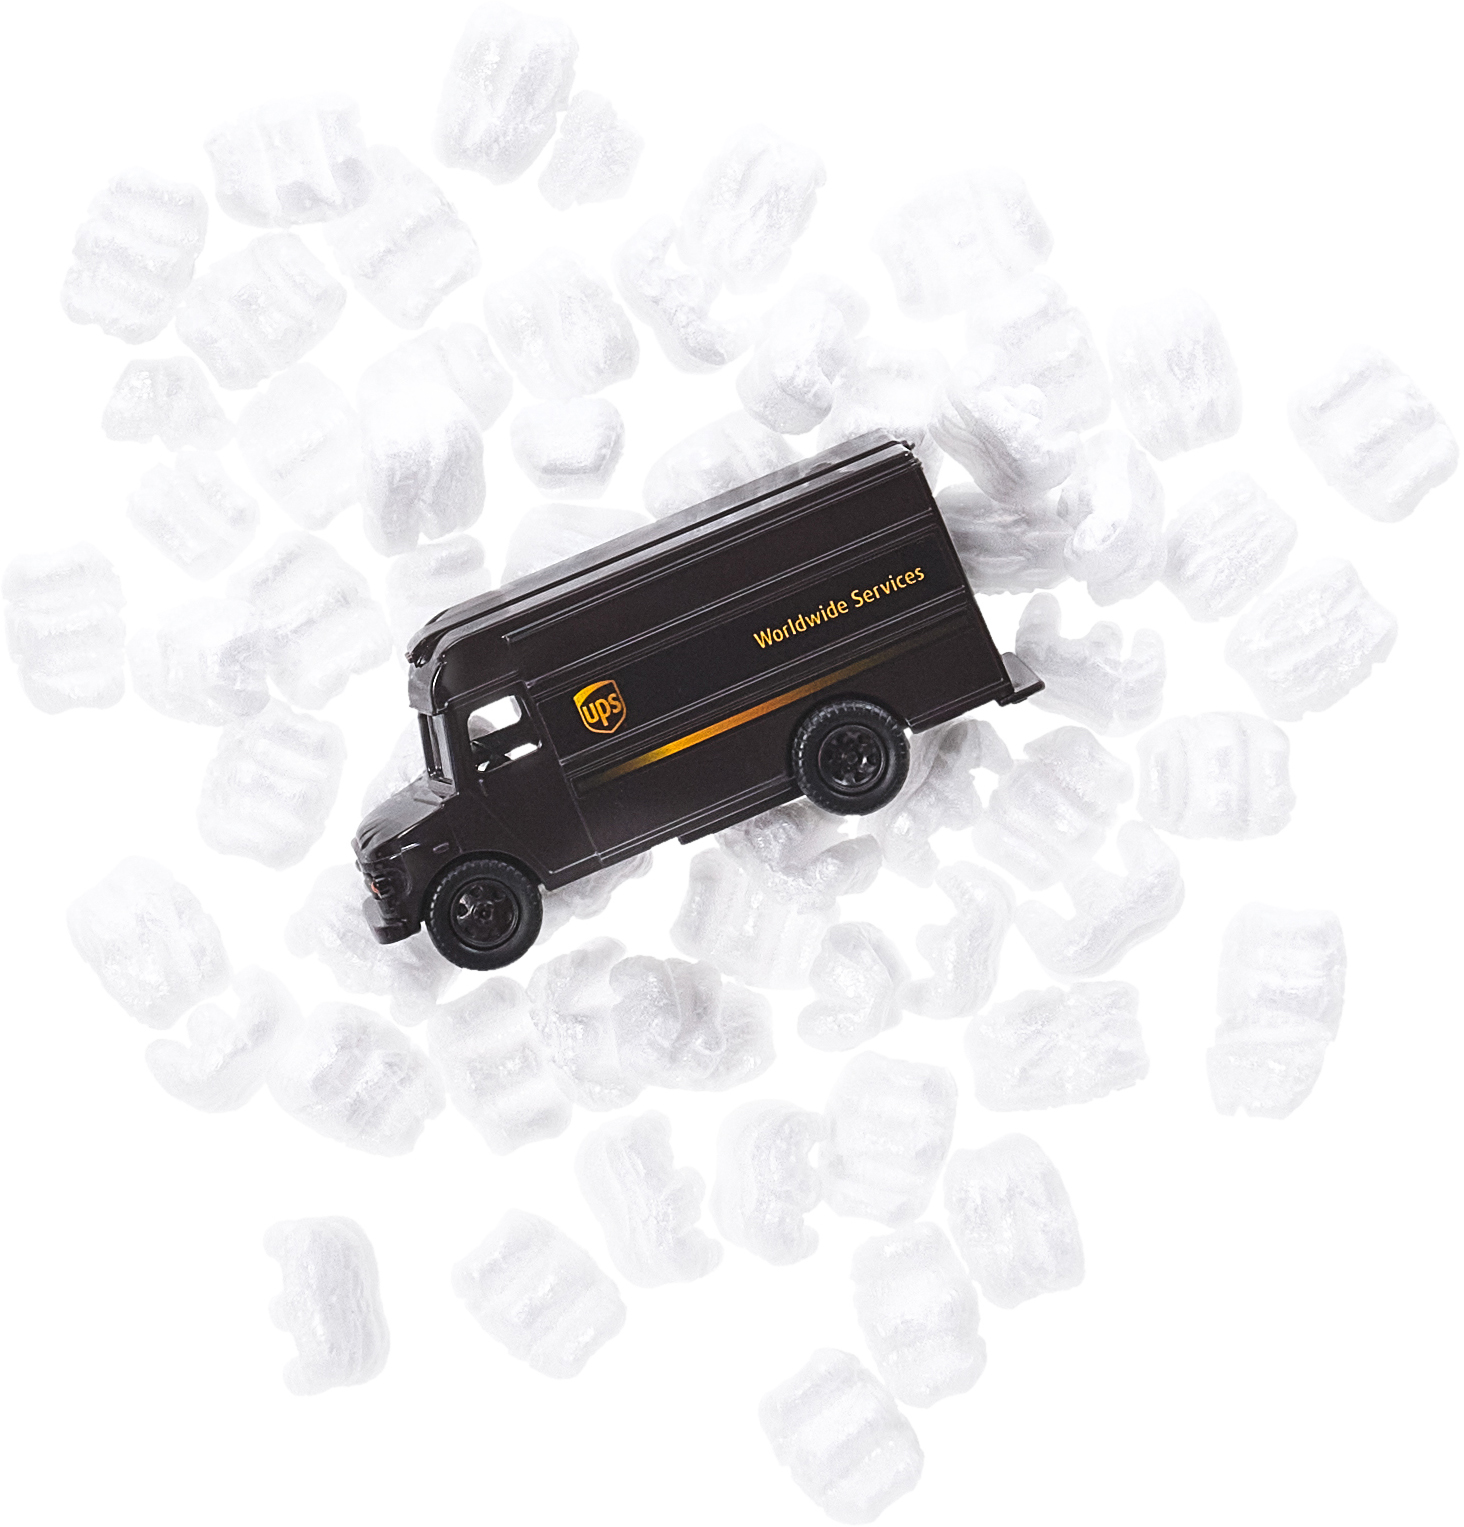 Toy UPS truck on shipping peanuts